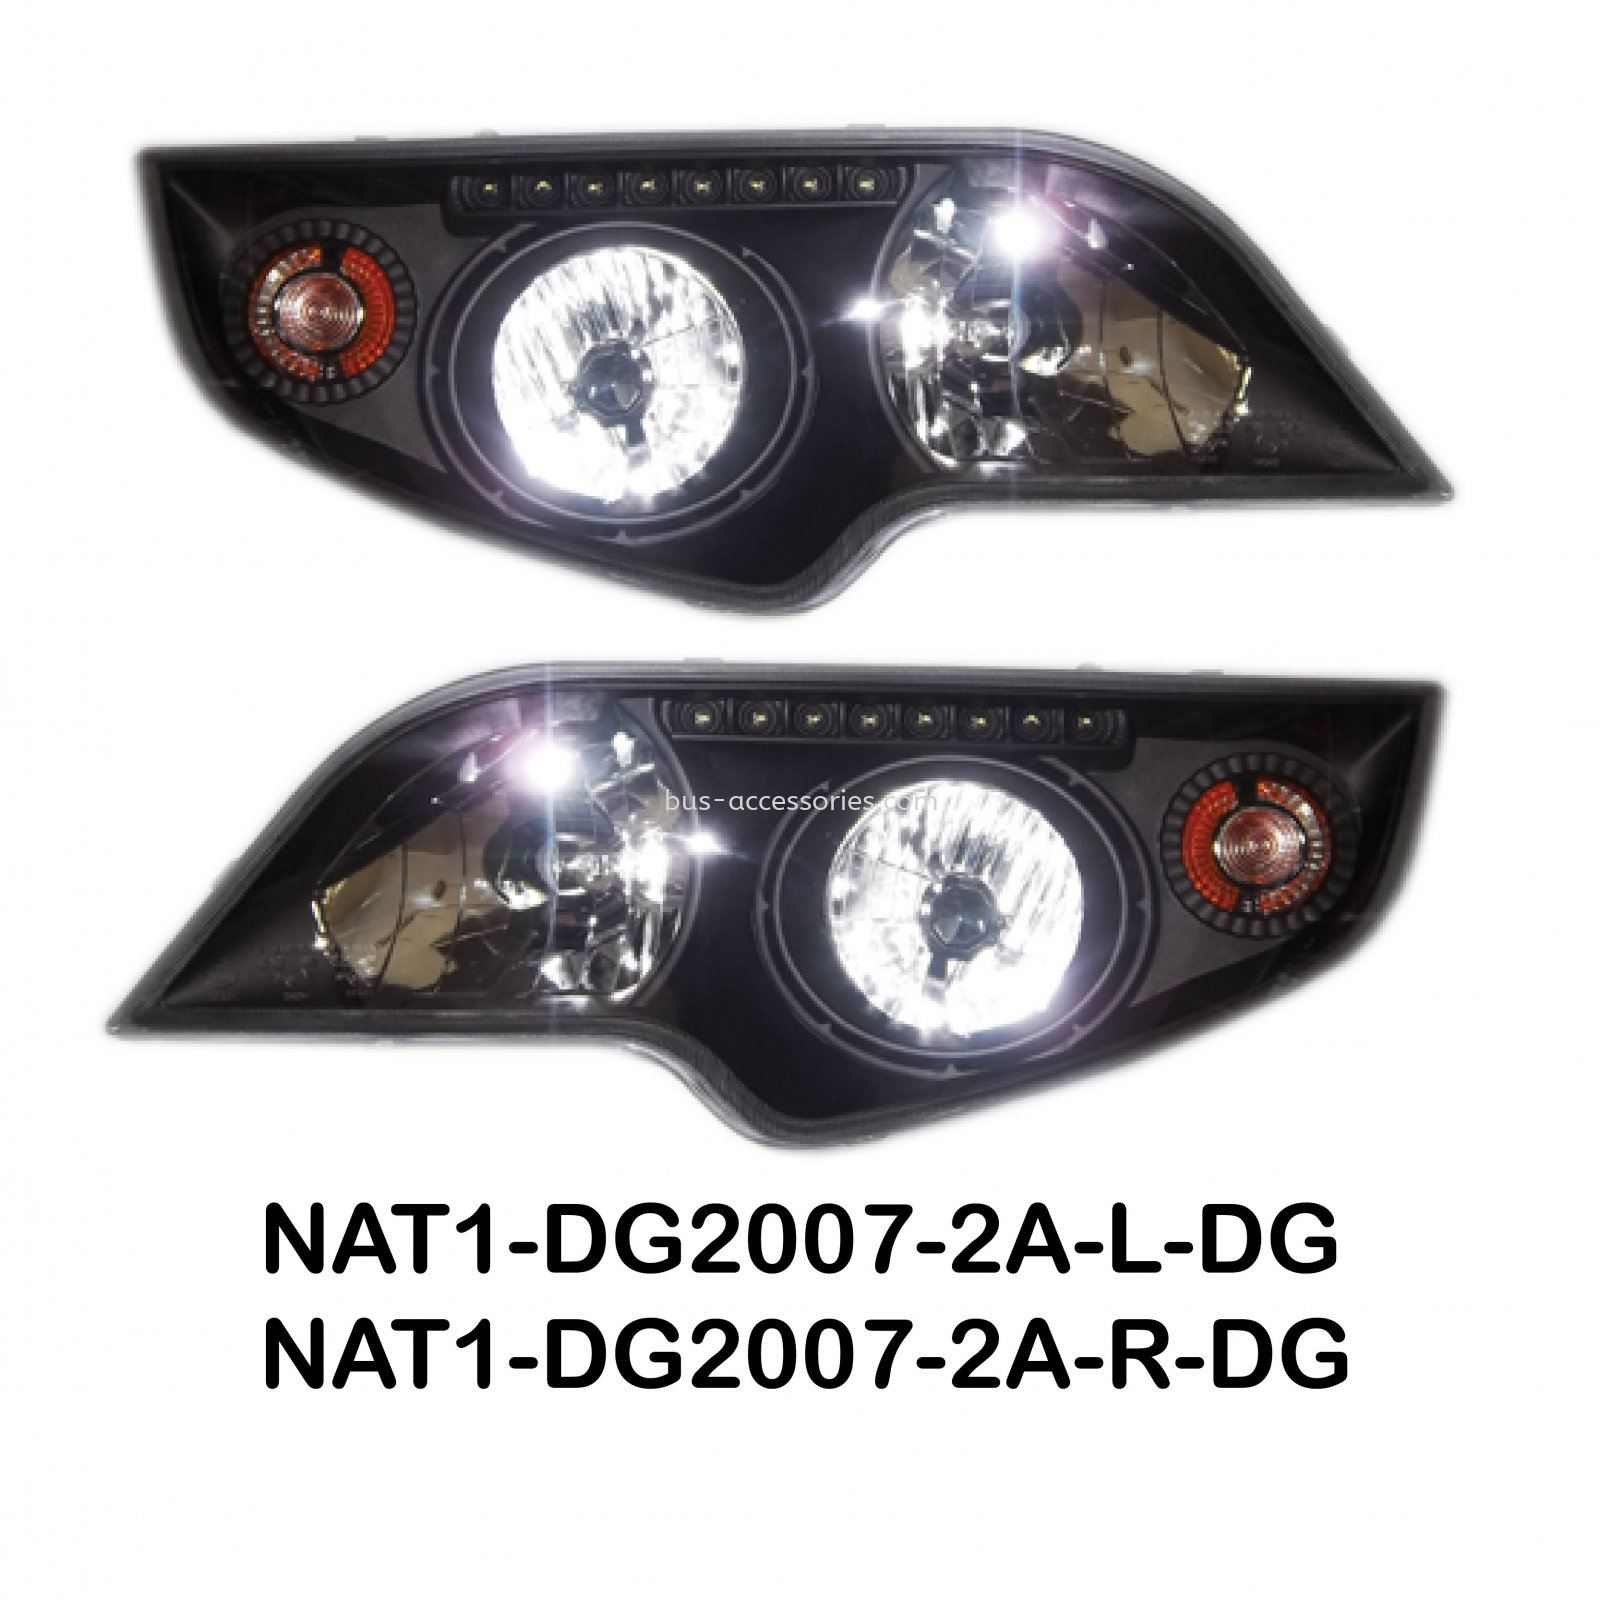 COMBINATION HEADLAMP DG2007-2A